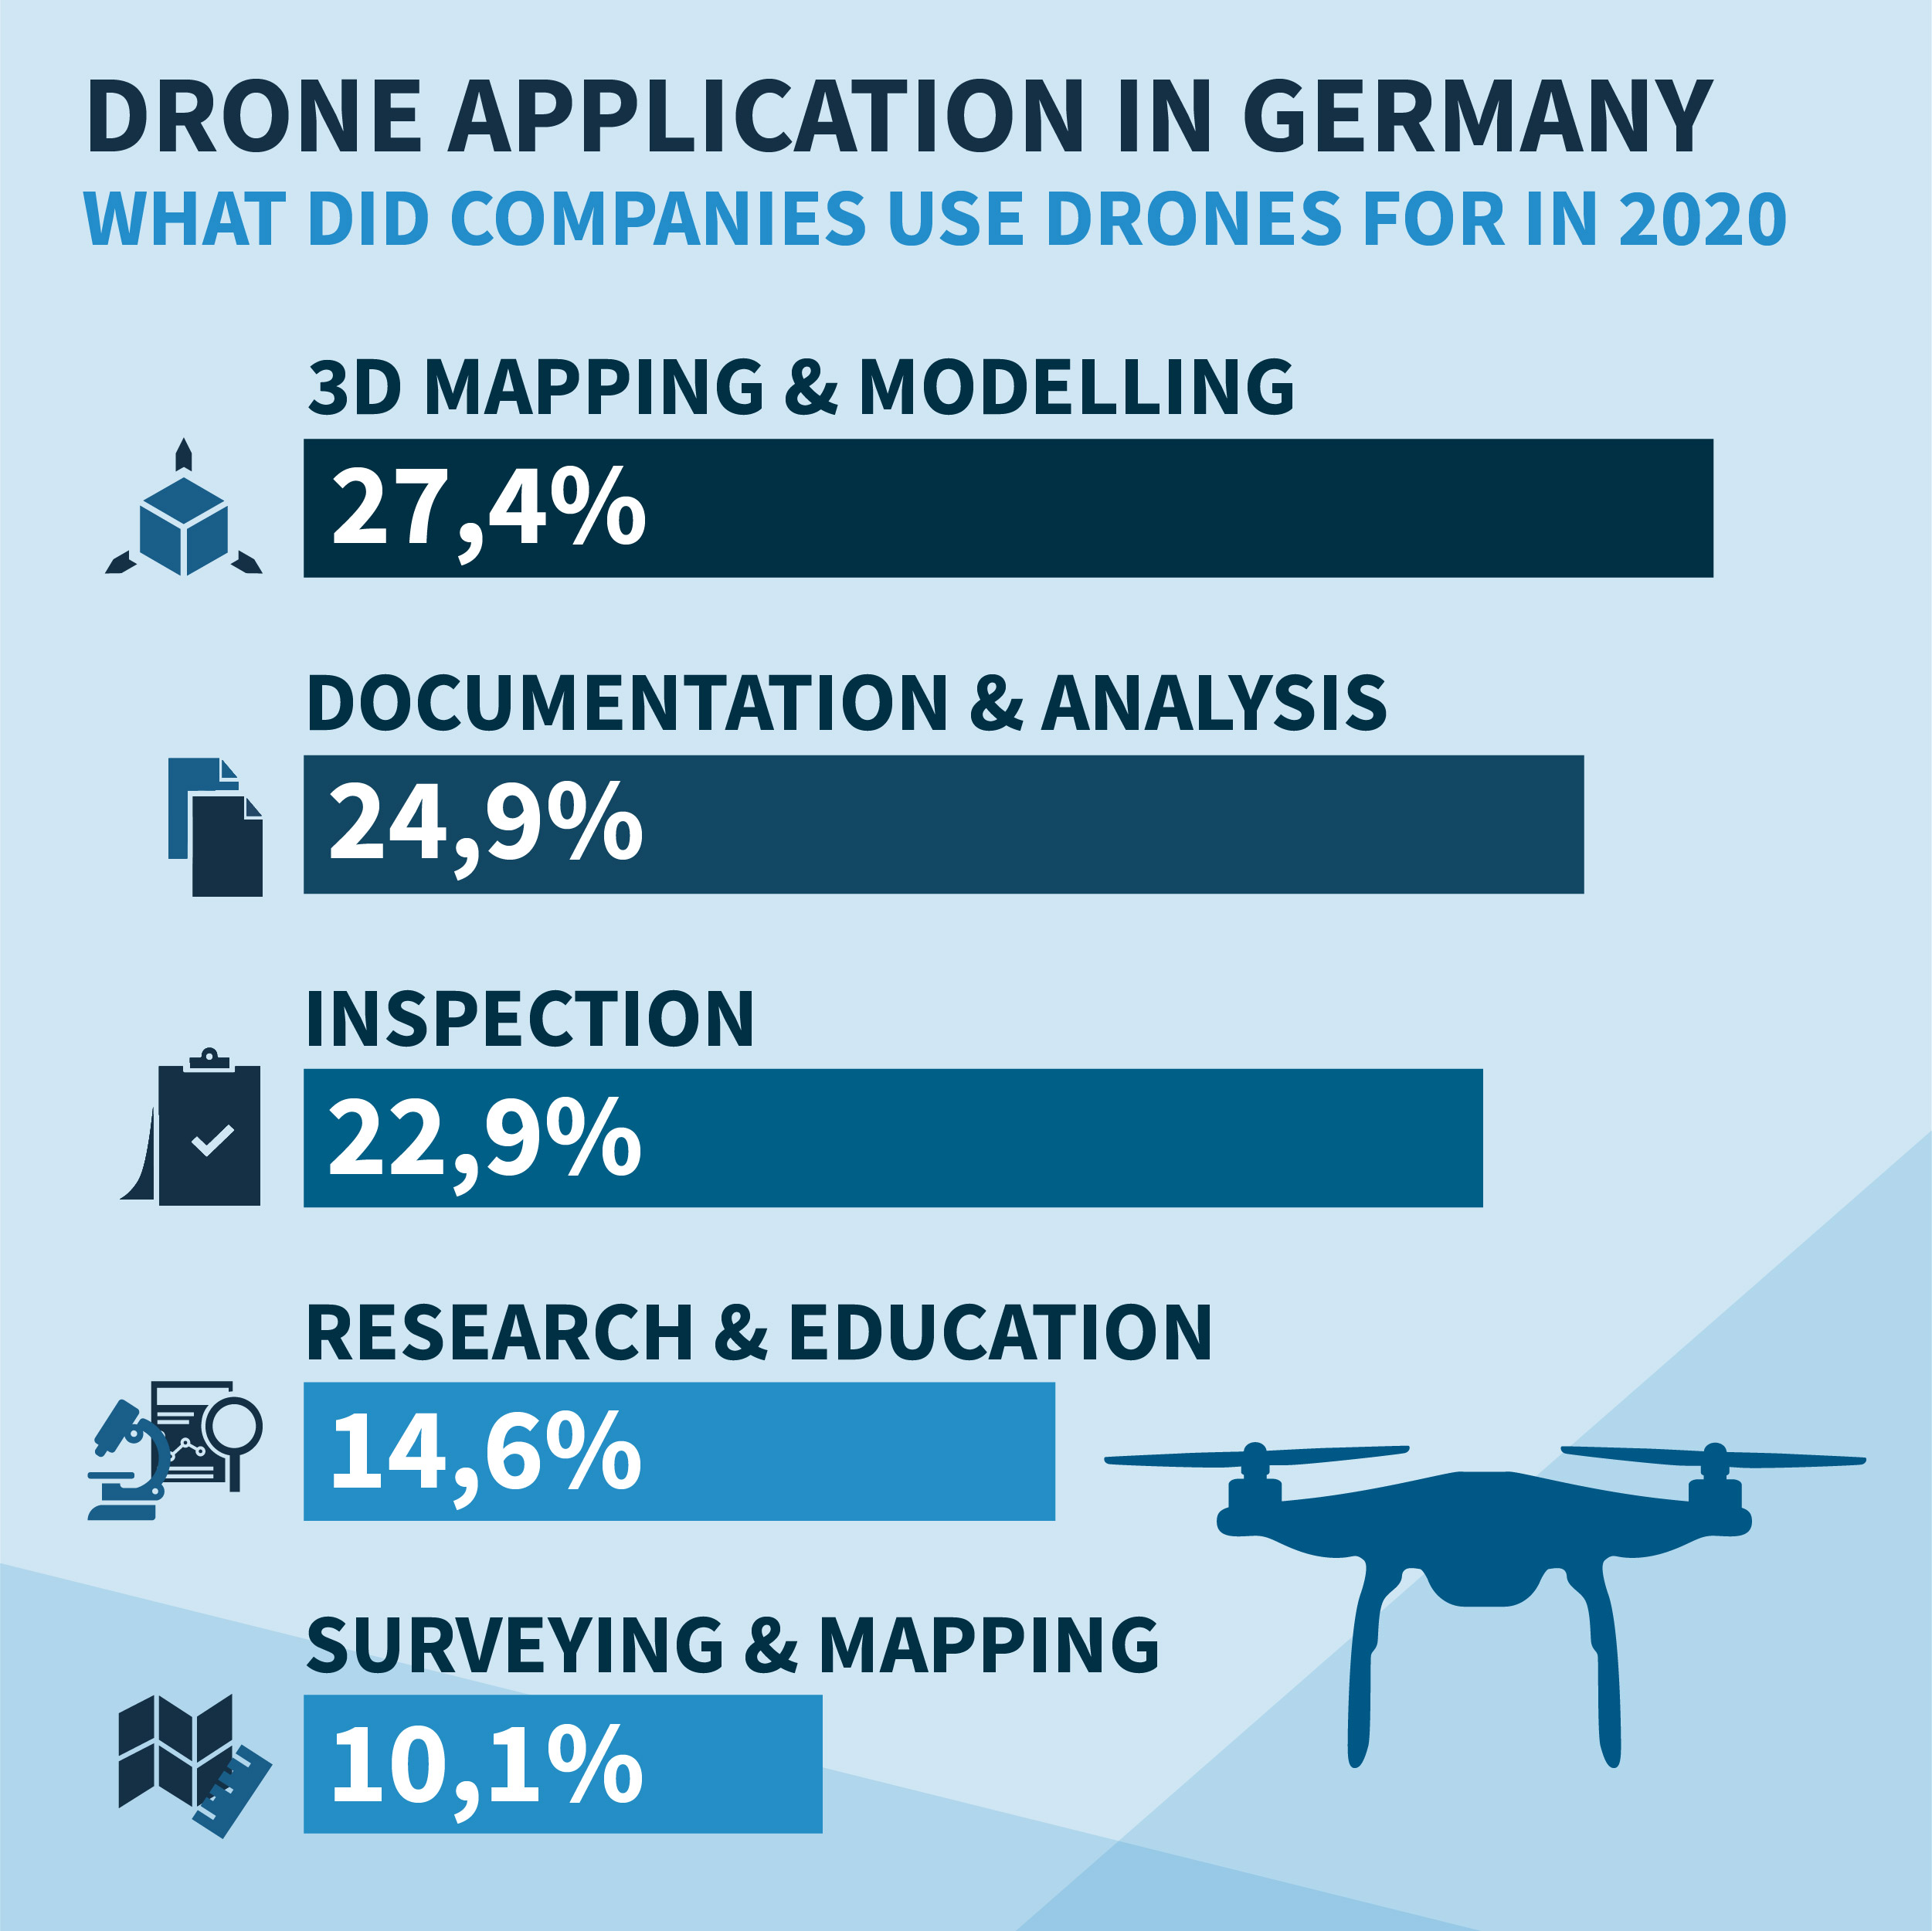 Drone Application in Germany 2020